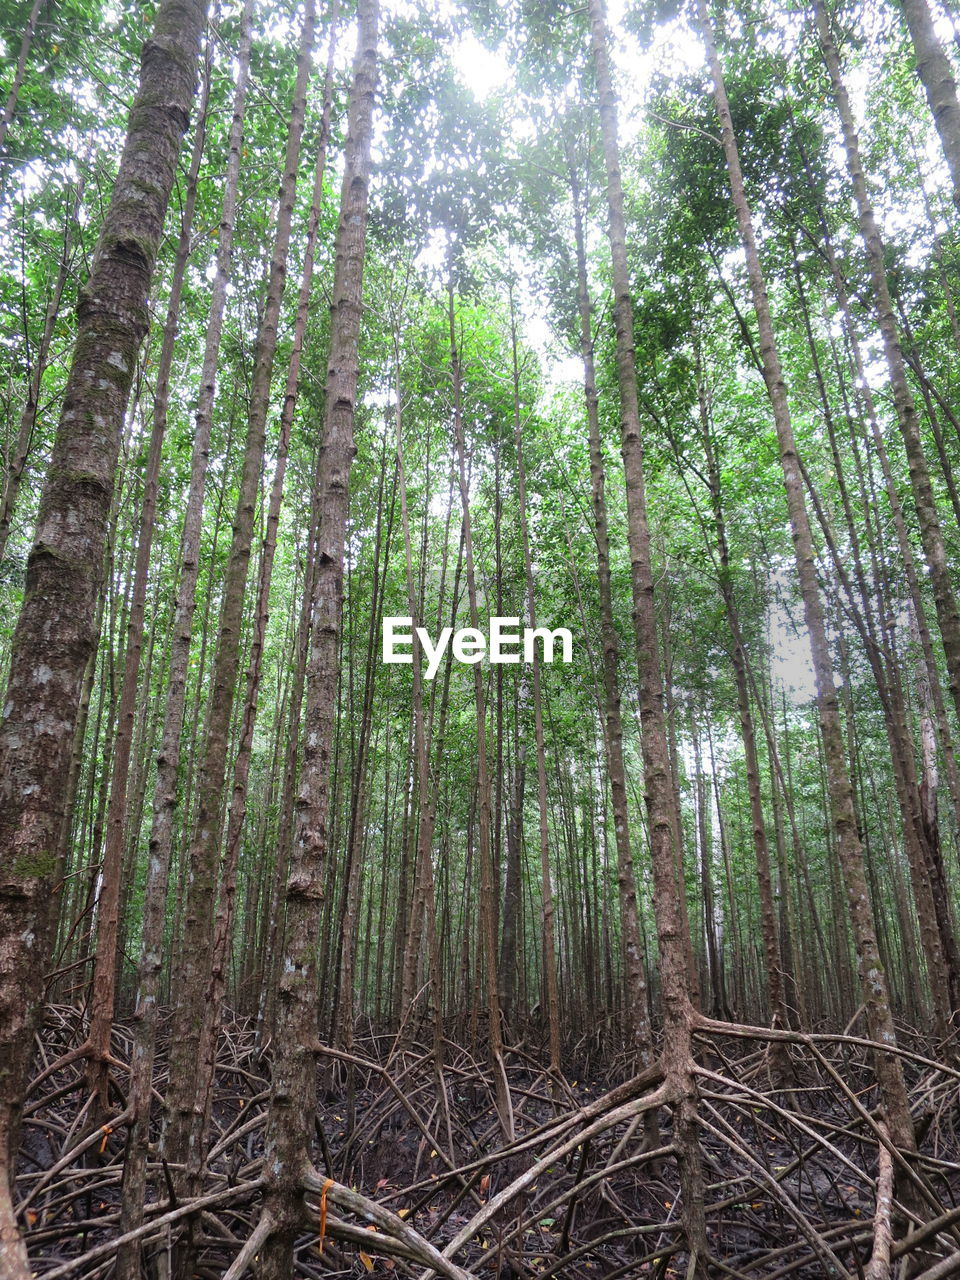 LOW ANGLE VIEW OF BAMBOO TREES IN THE FOREST